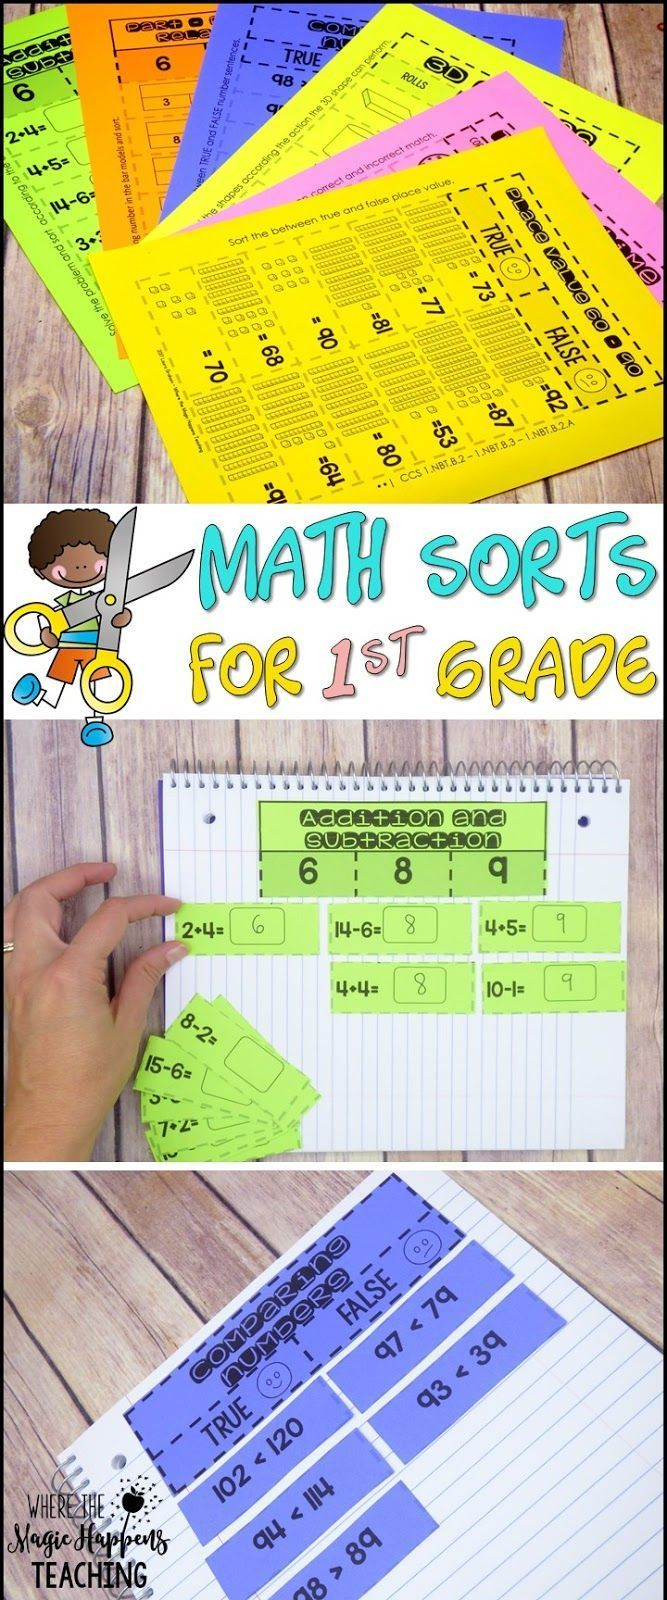 Math Sorts for First Grade | Math sorting activities, Build math ...